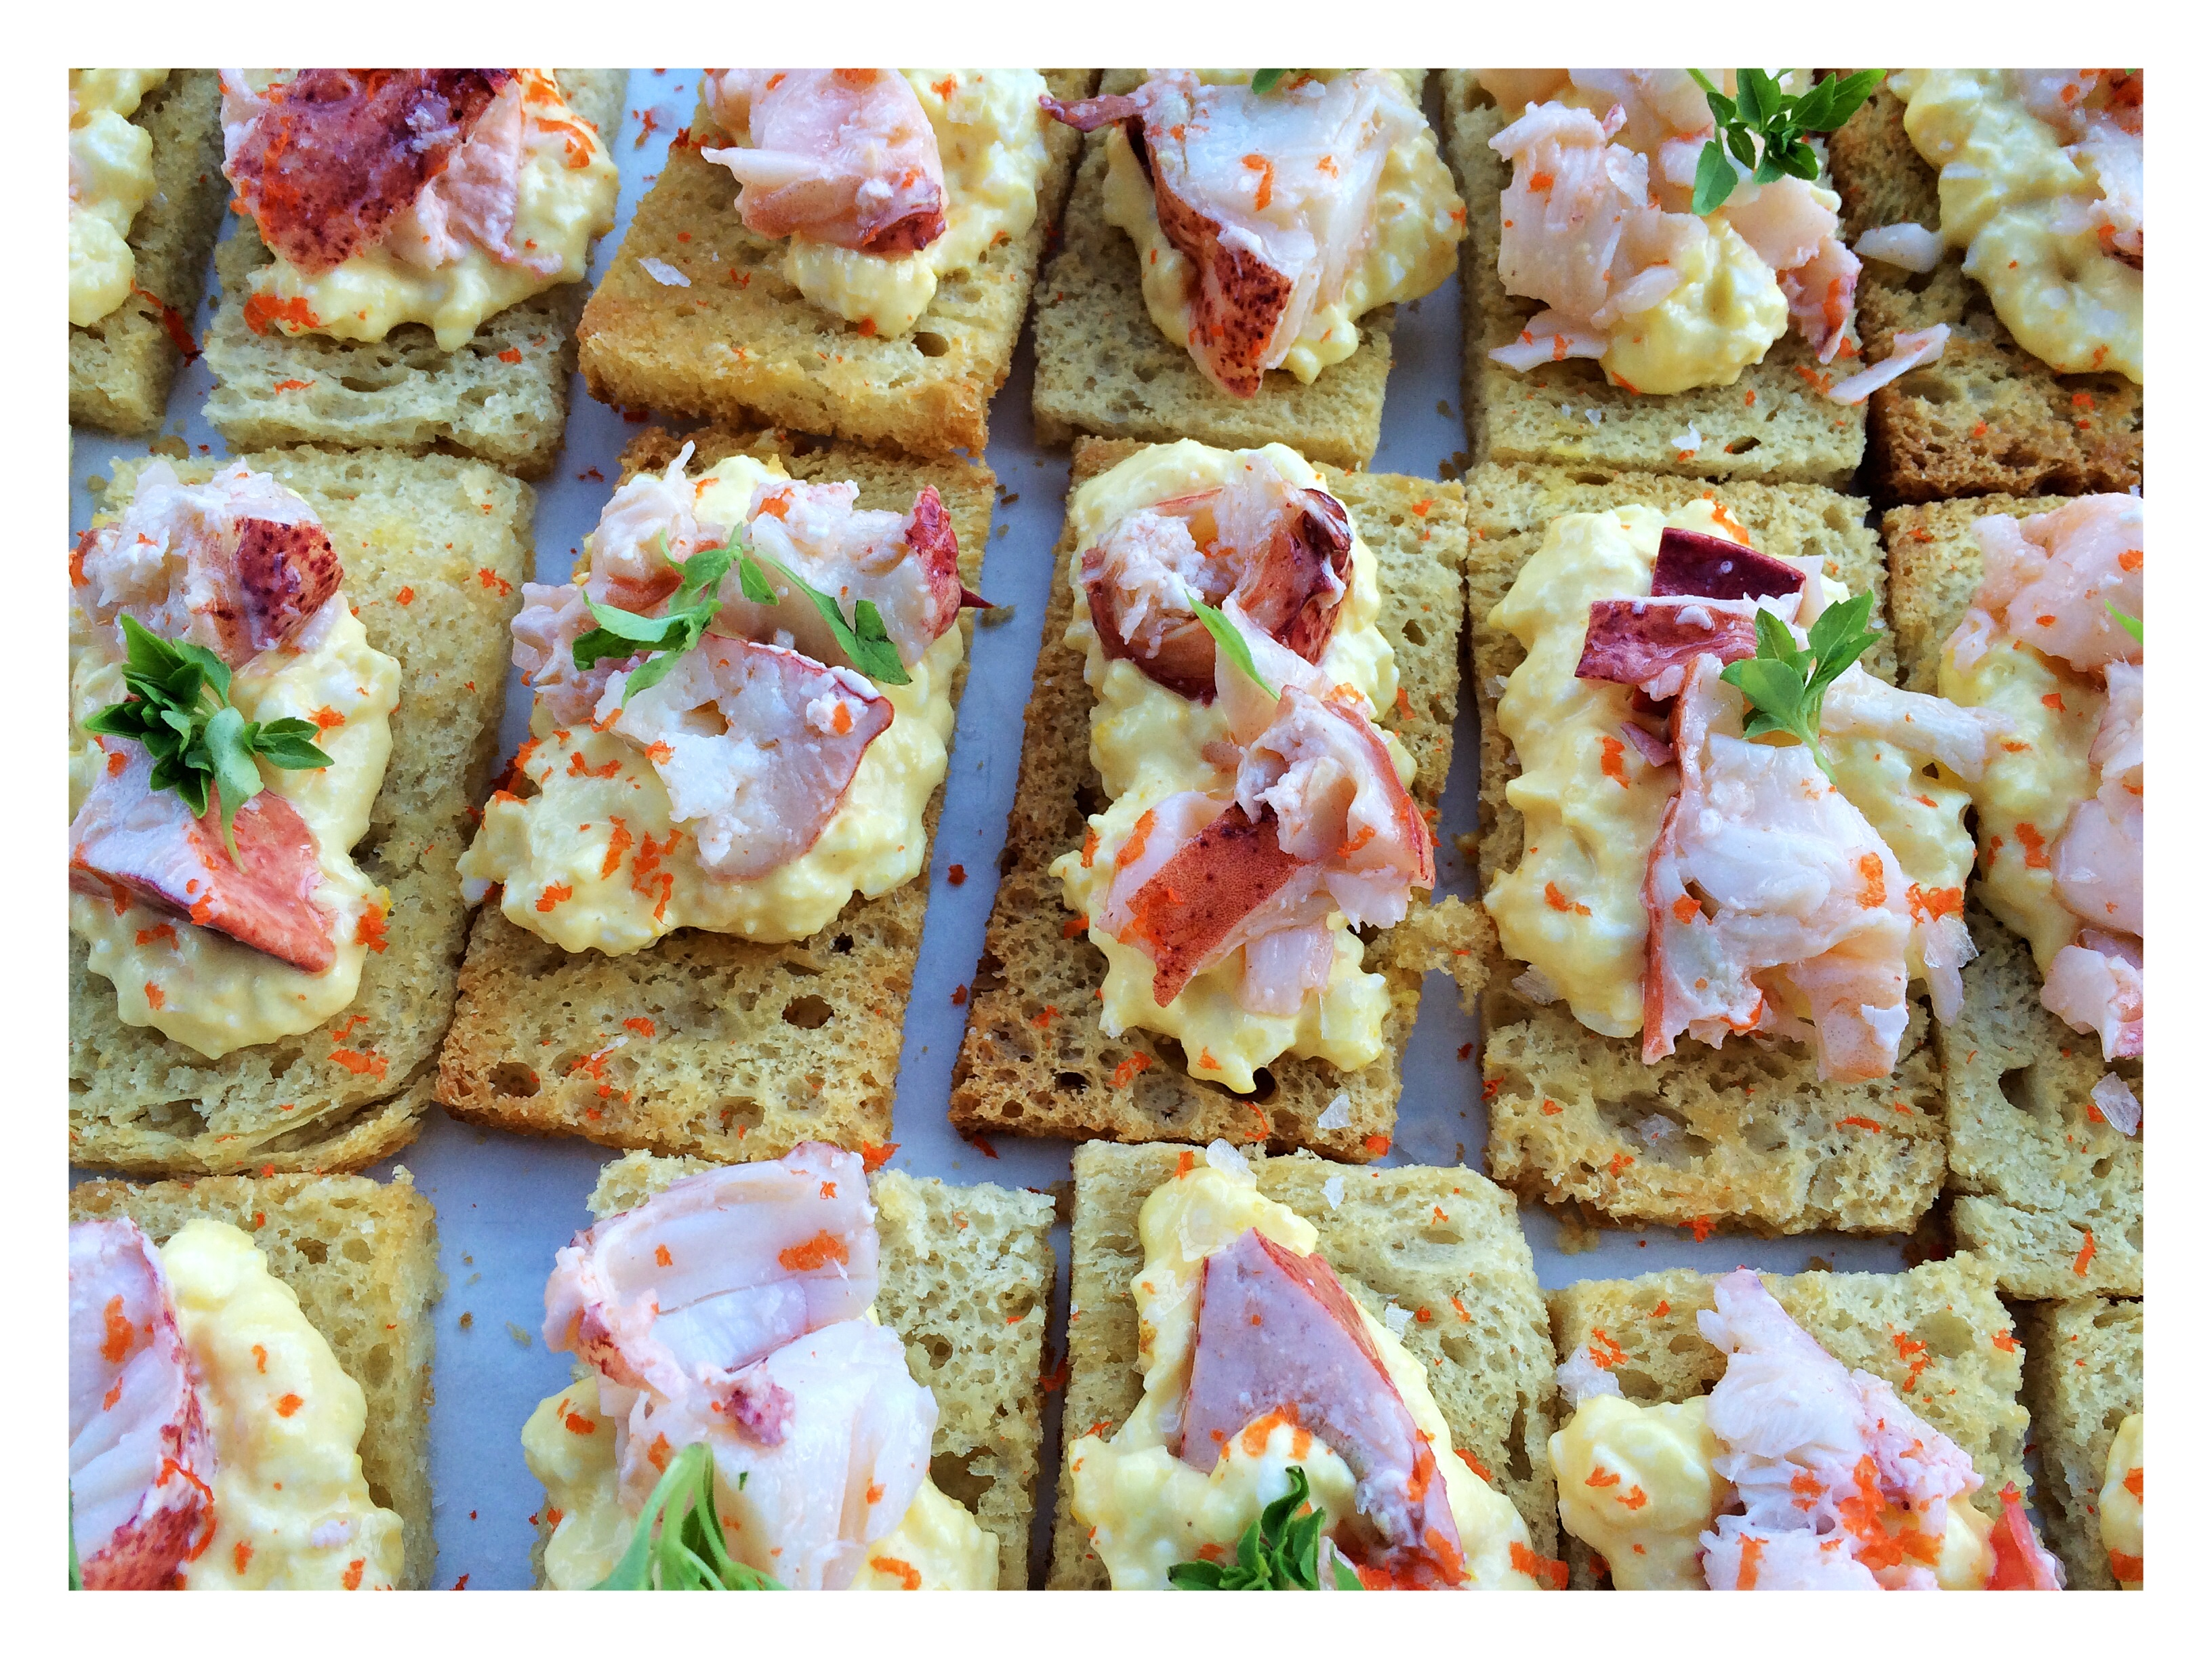 Lobster pieces, roasted lobster roe, micro basil & sea salt atop creamy egg salad on buttered brioche toast